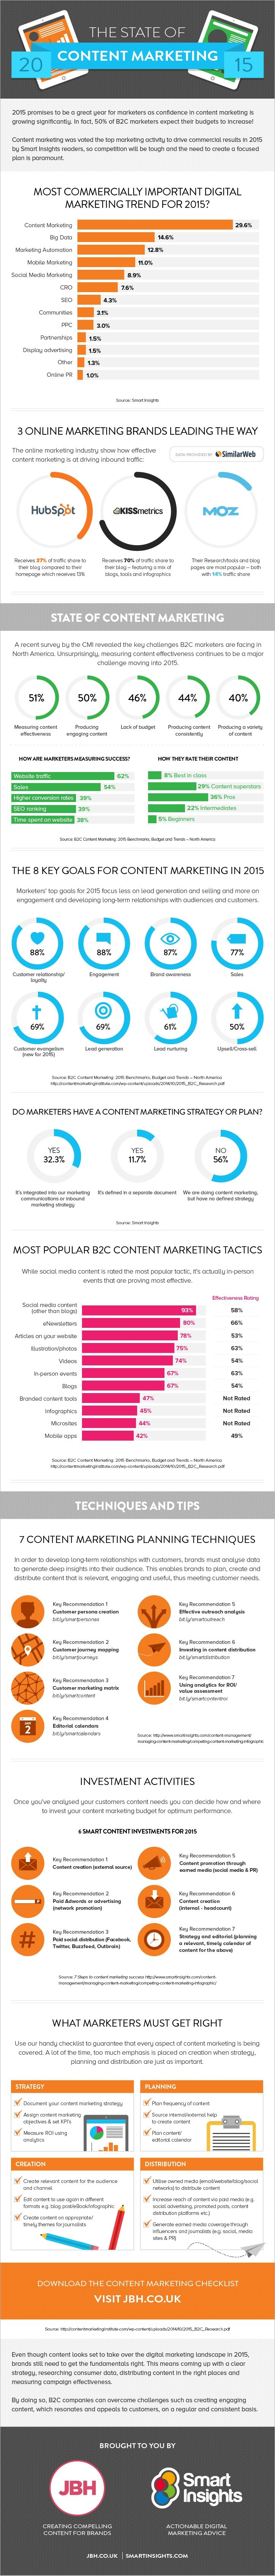 The state of Content Marketing in 2015 #Infographic